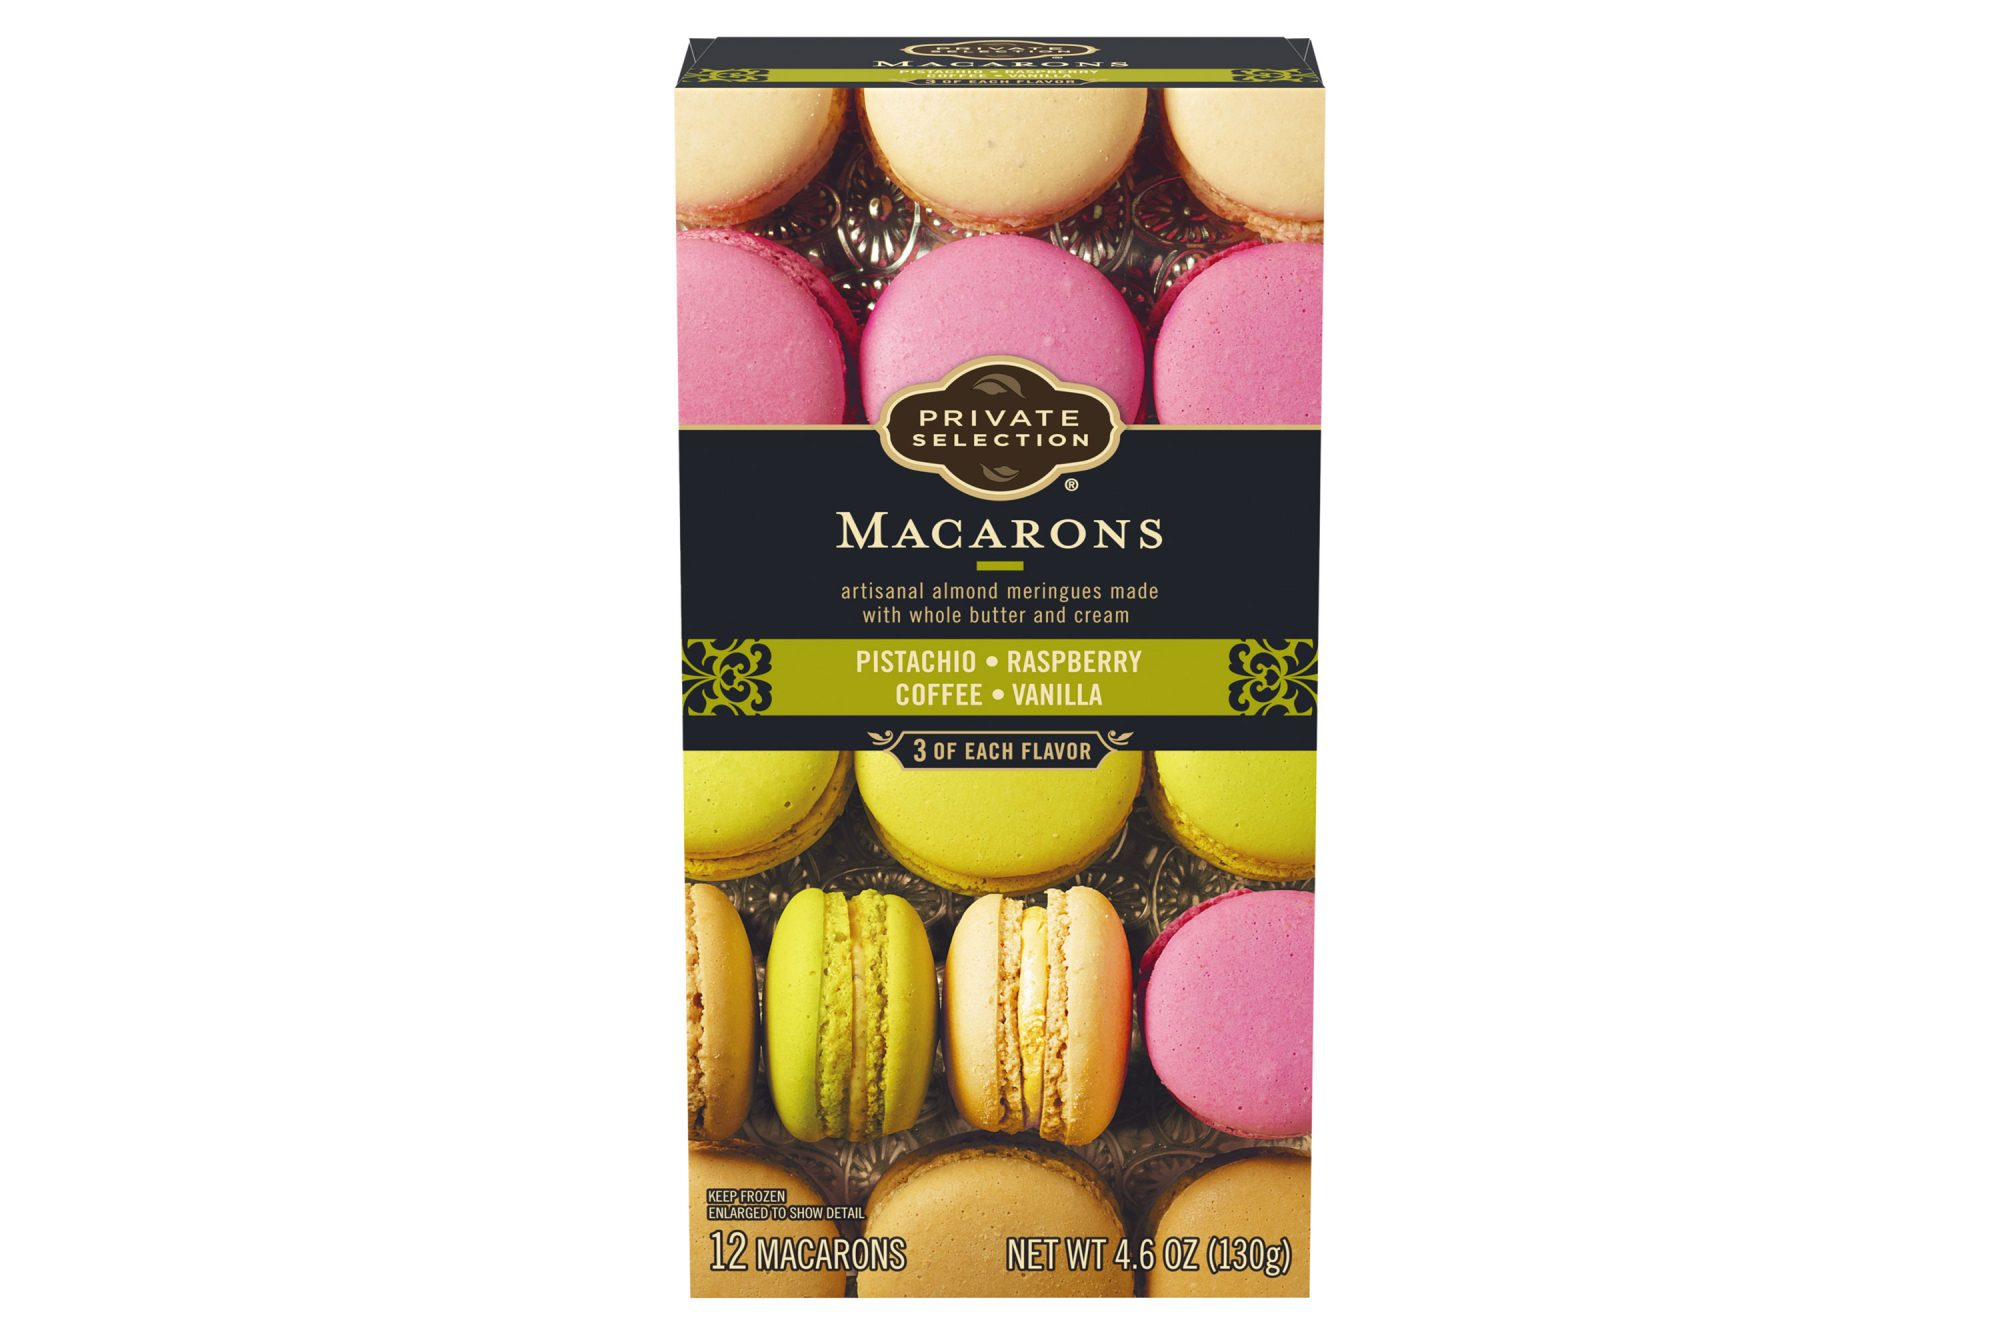 Private Selection Macarons box